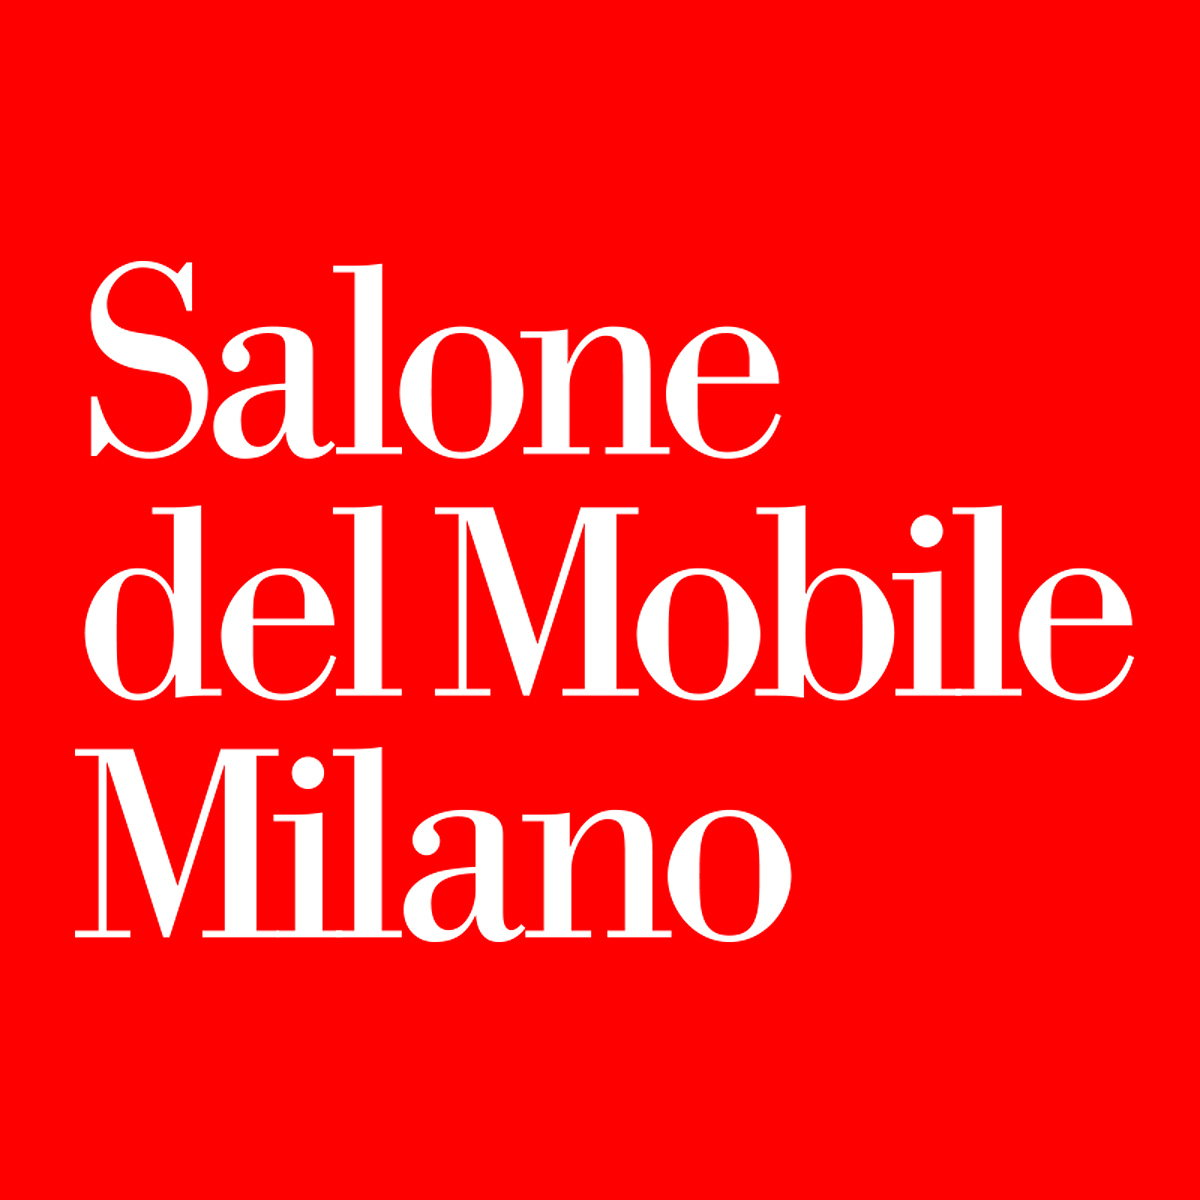 Salone Del Mobile.Milano 2020 Postponed to June 16-21 (CANCELED)